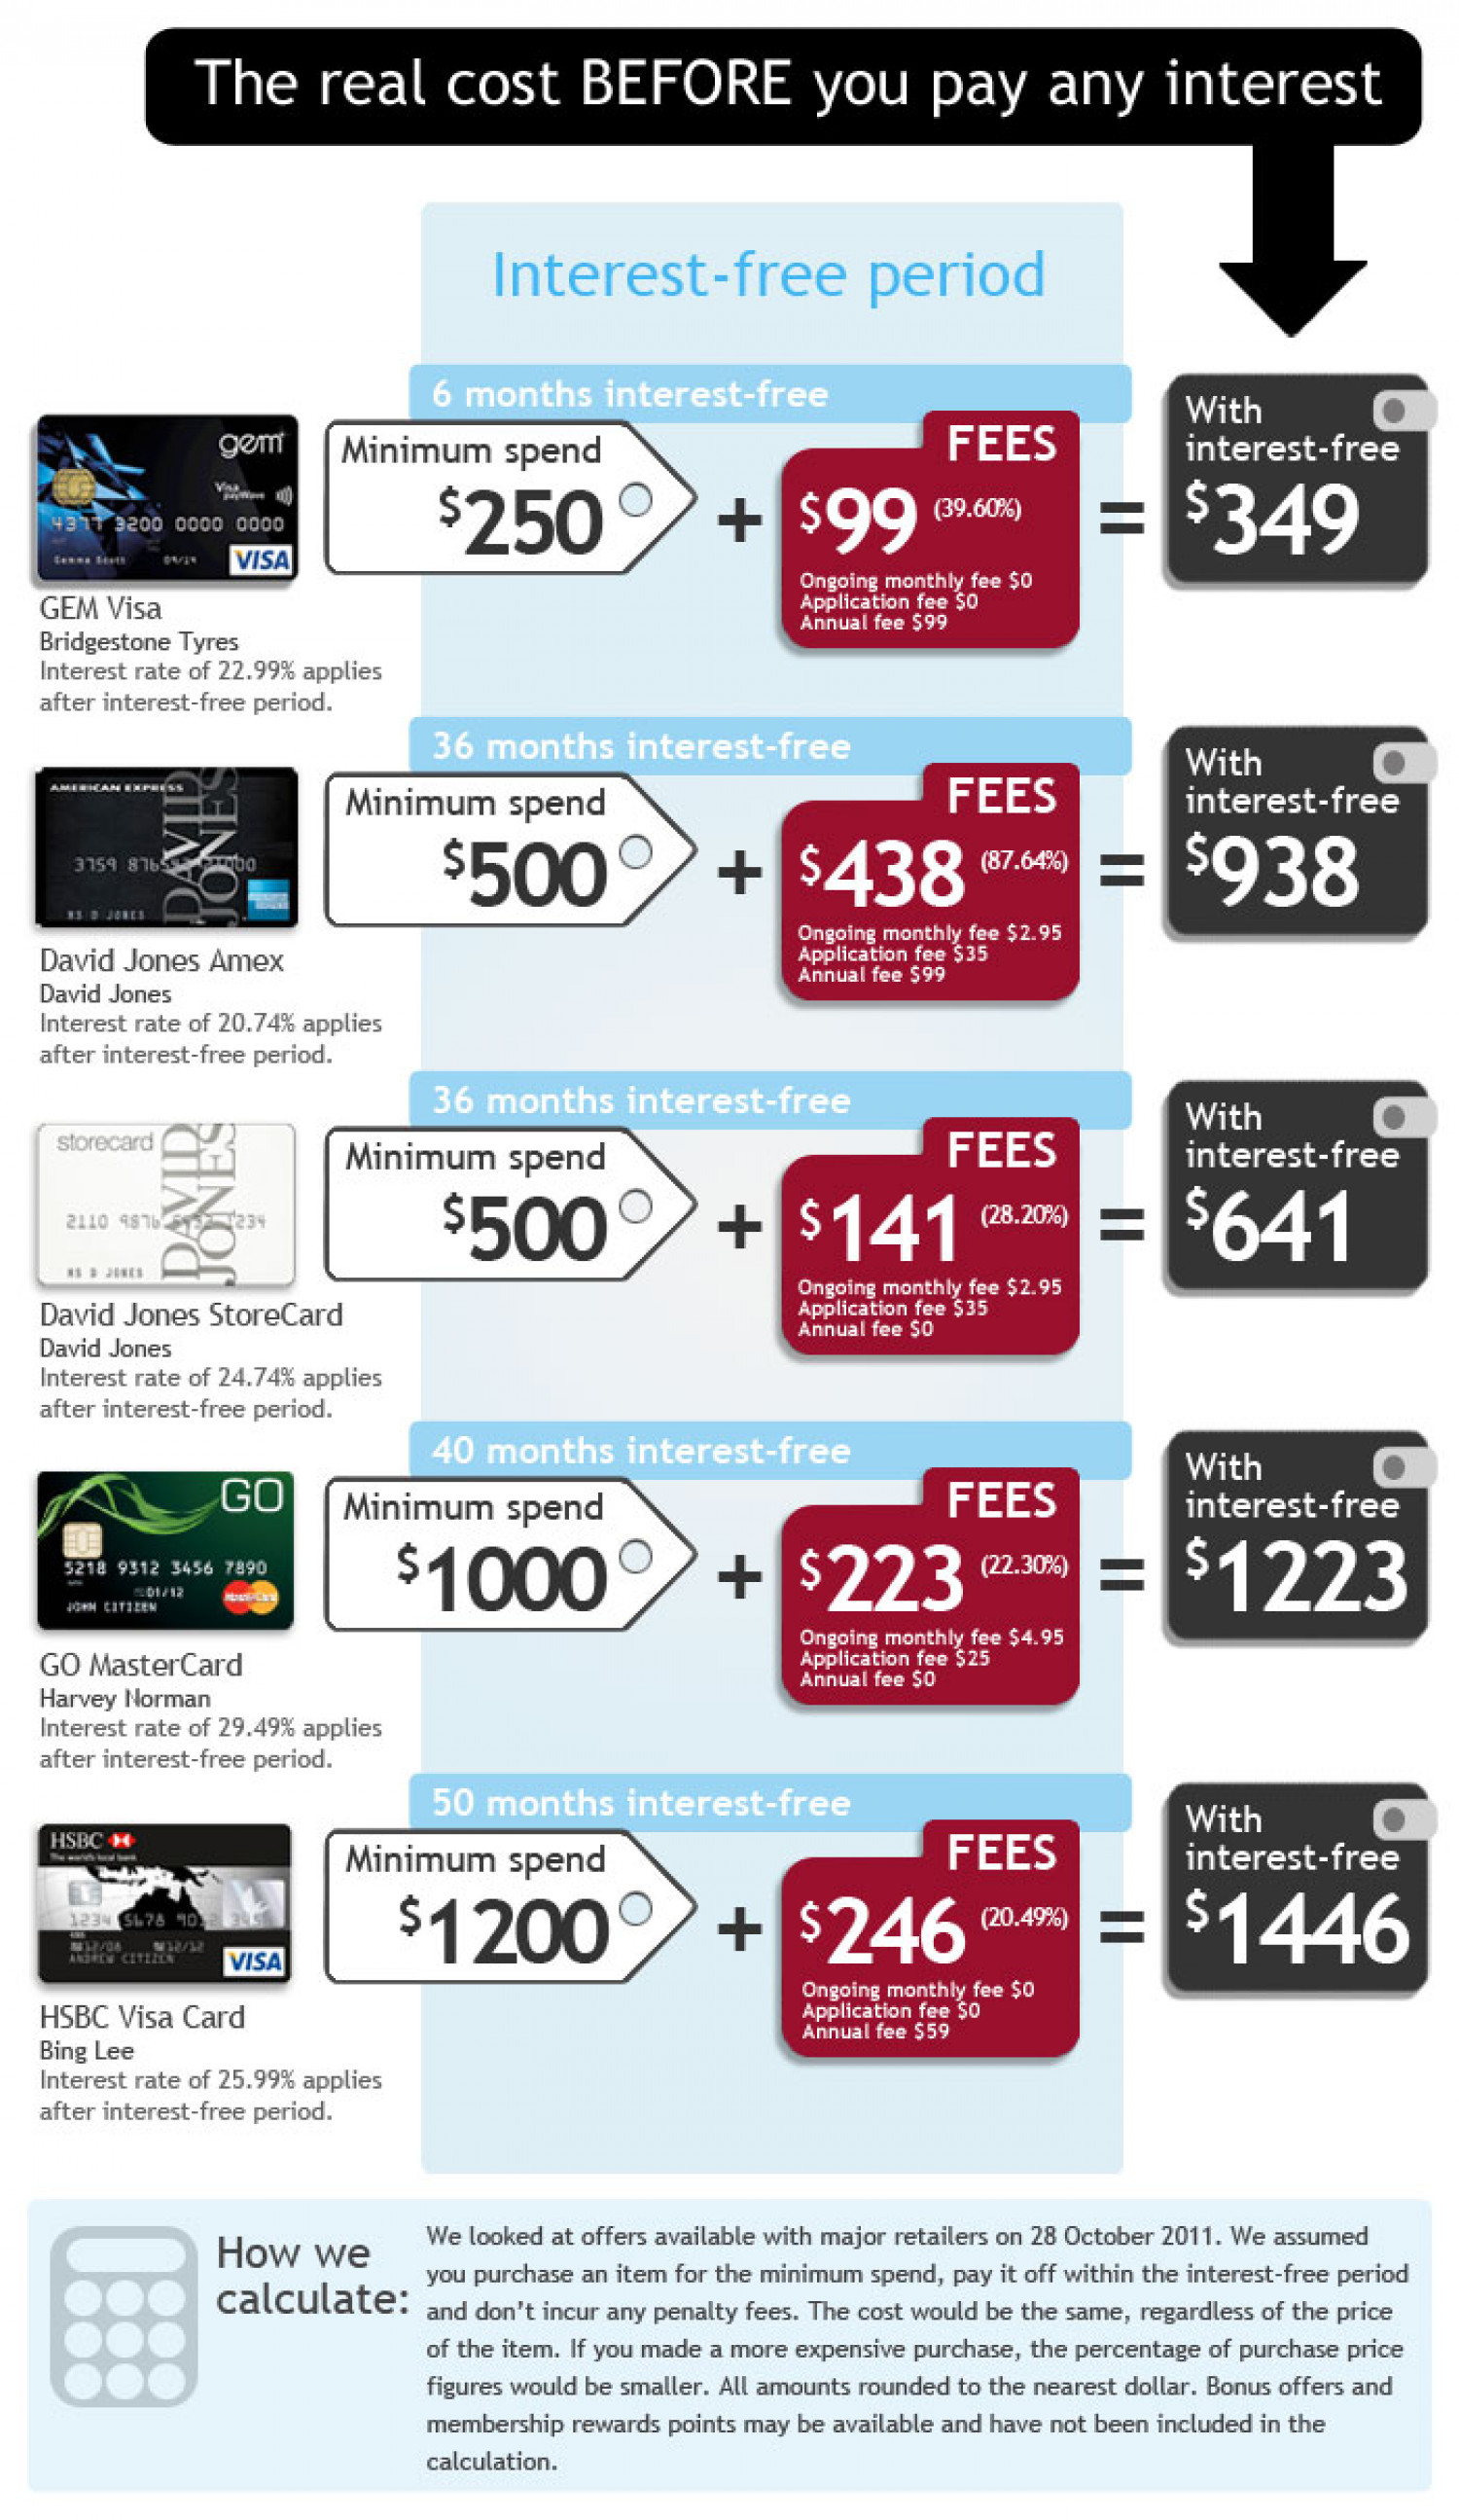 Cost of Interest-free Credit Cards Infographic